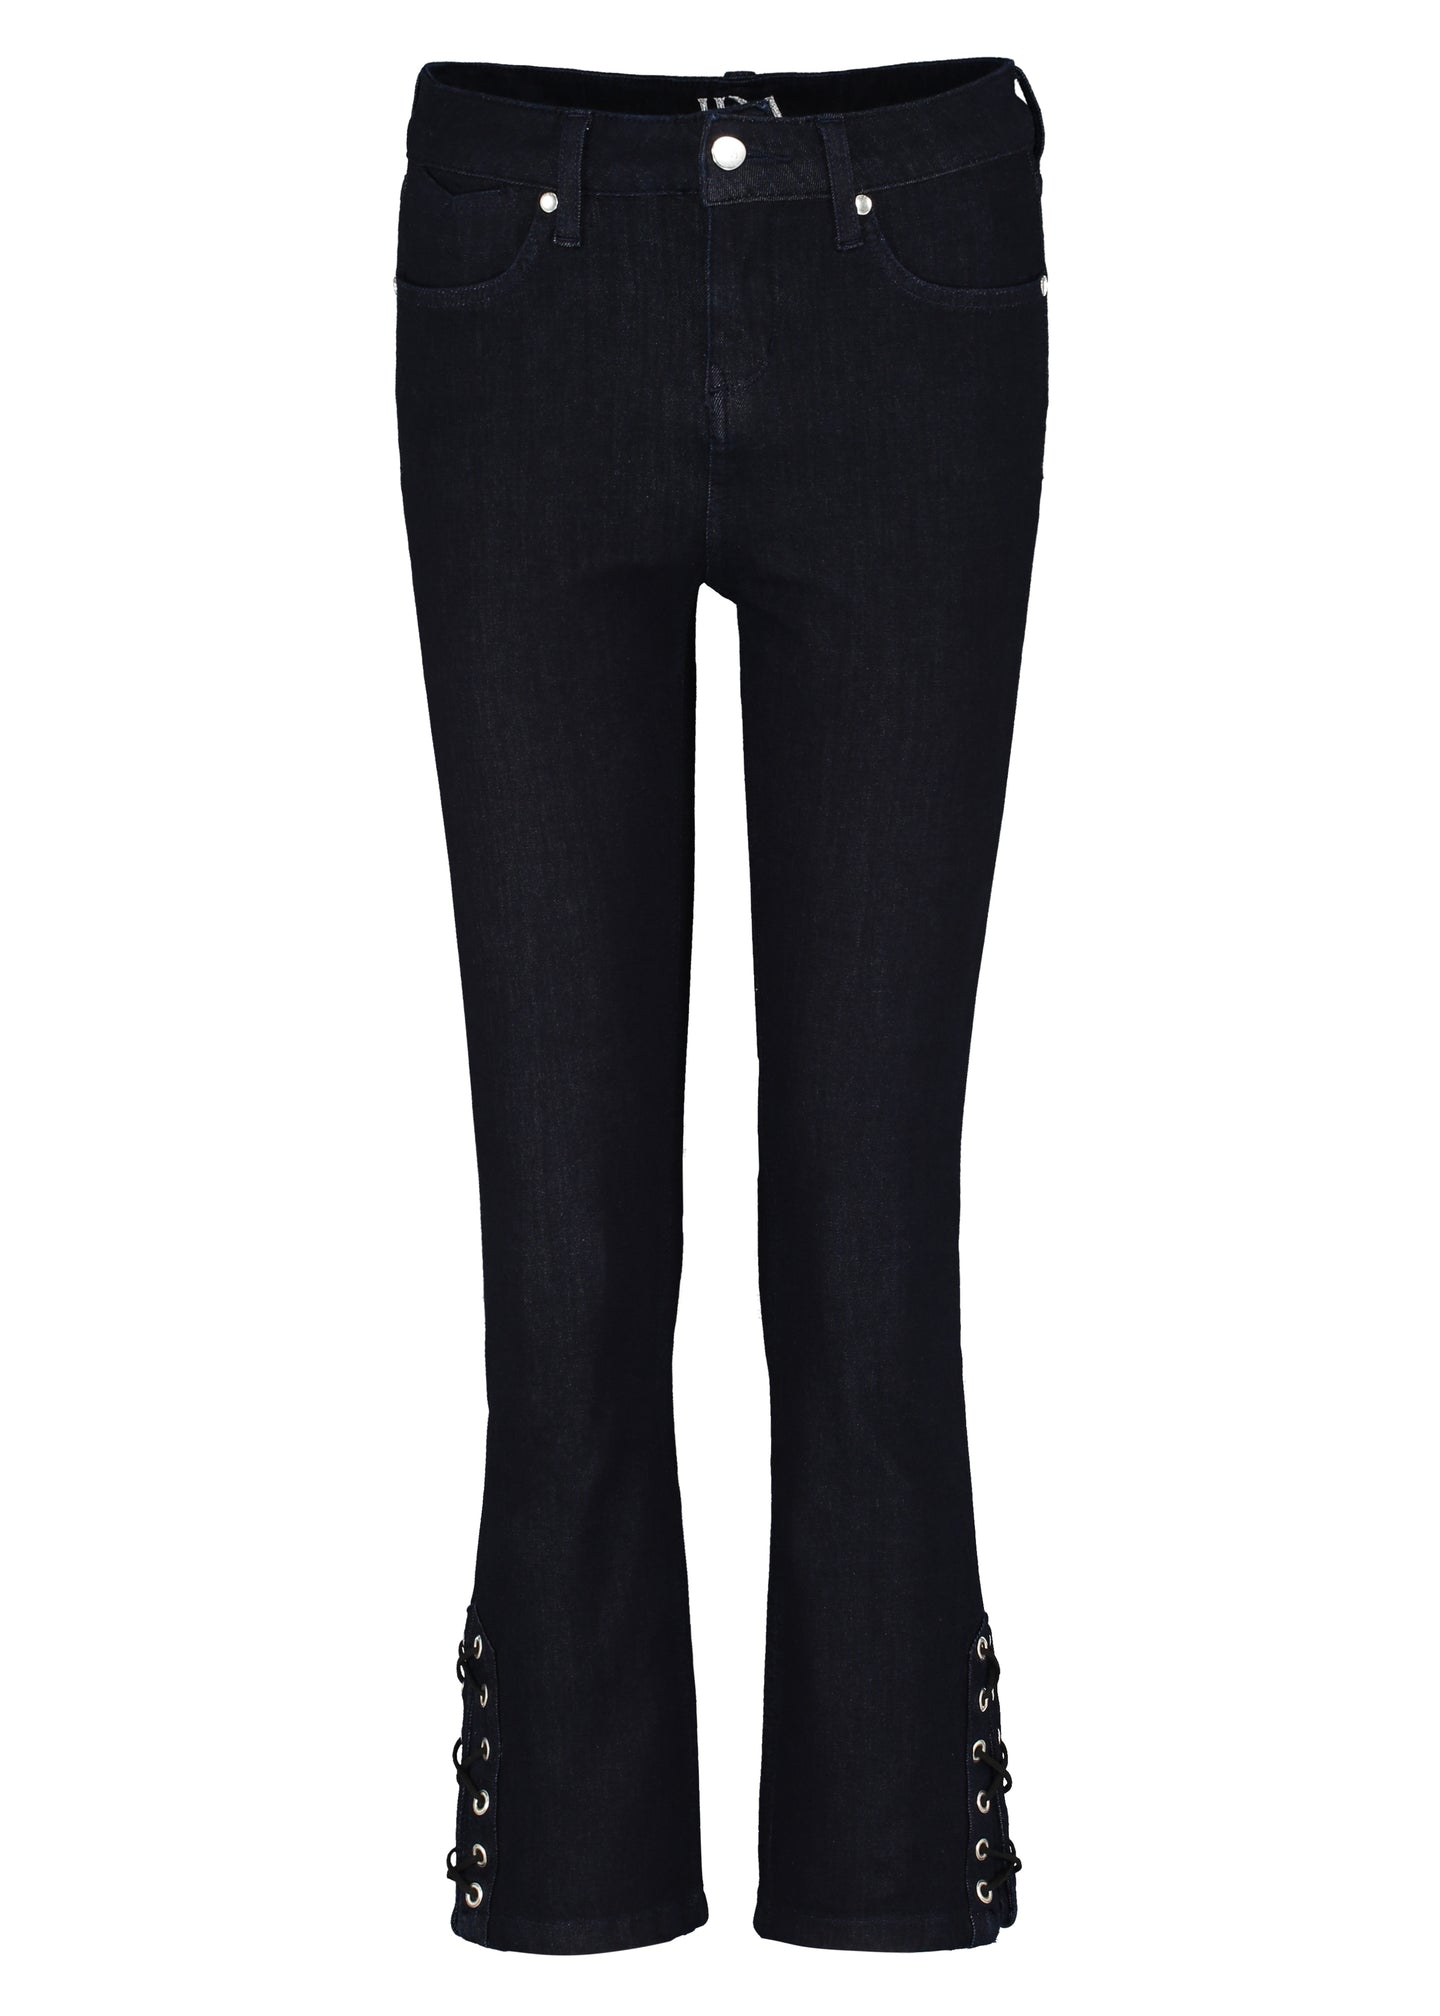 Lois Mini Boot Jeans - Deep Big Skies with Noir Lace Up